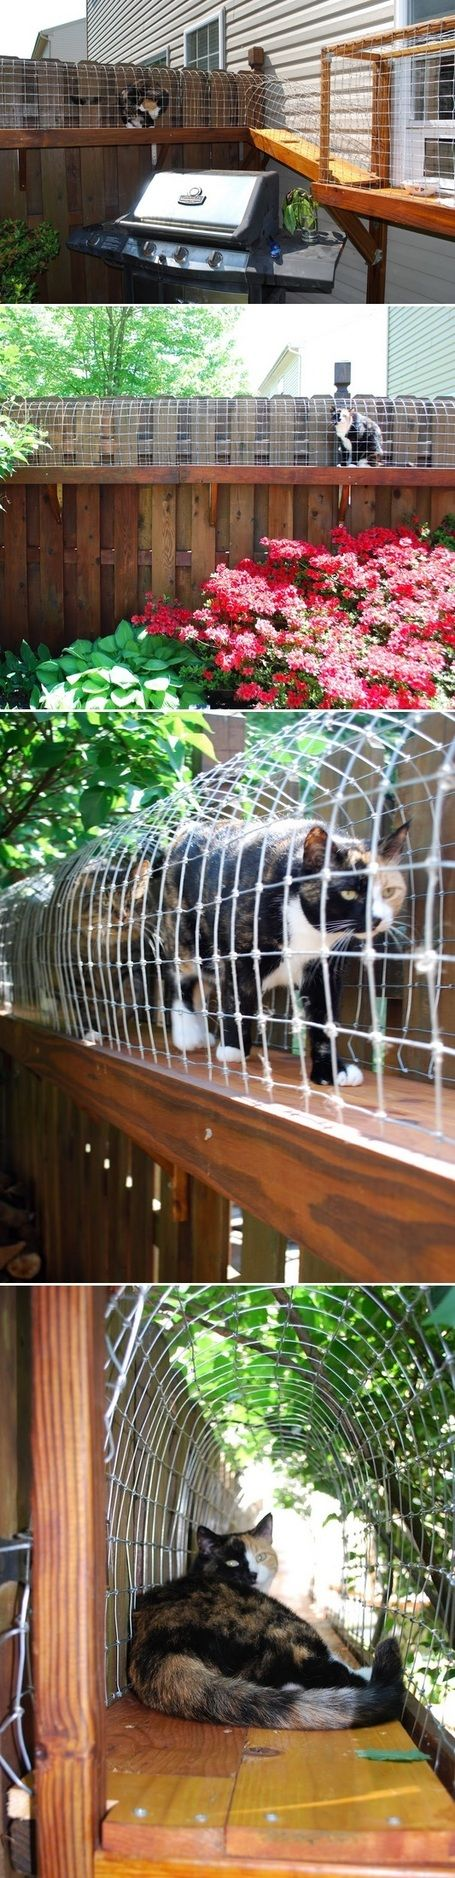 best 25 cat tunnel ideas on pinterest diy toys for indoor cats